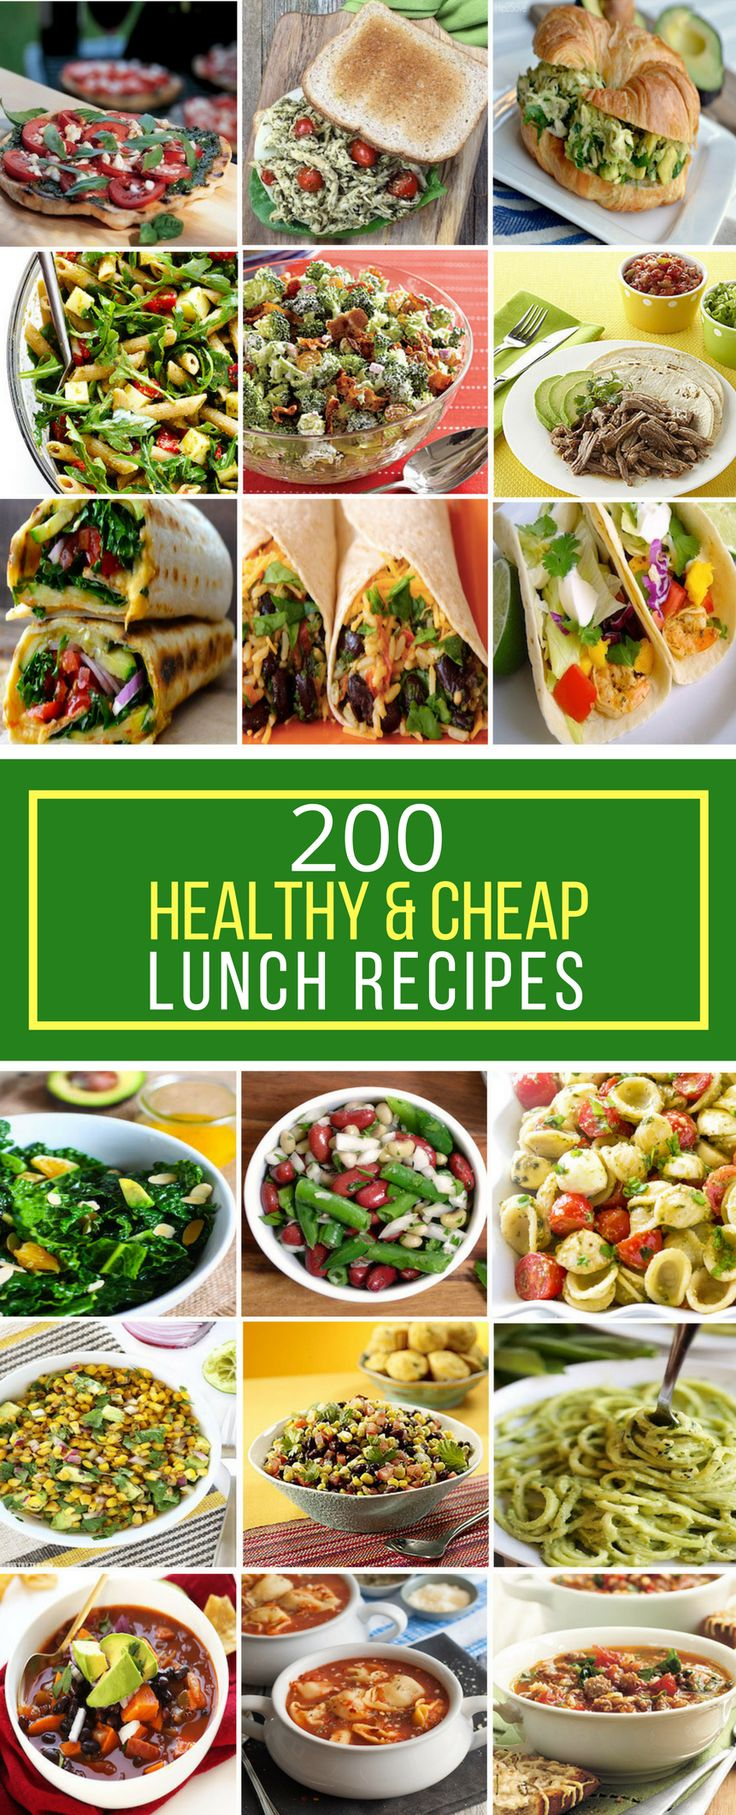 Cheap healthy food recipes - 200 Healthy Cheap Lunch Recipes